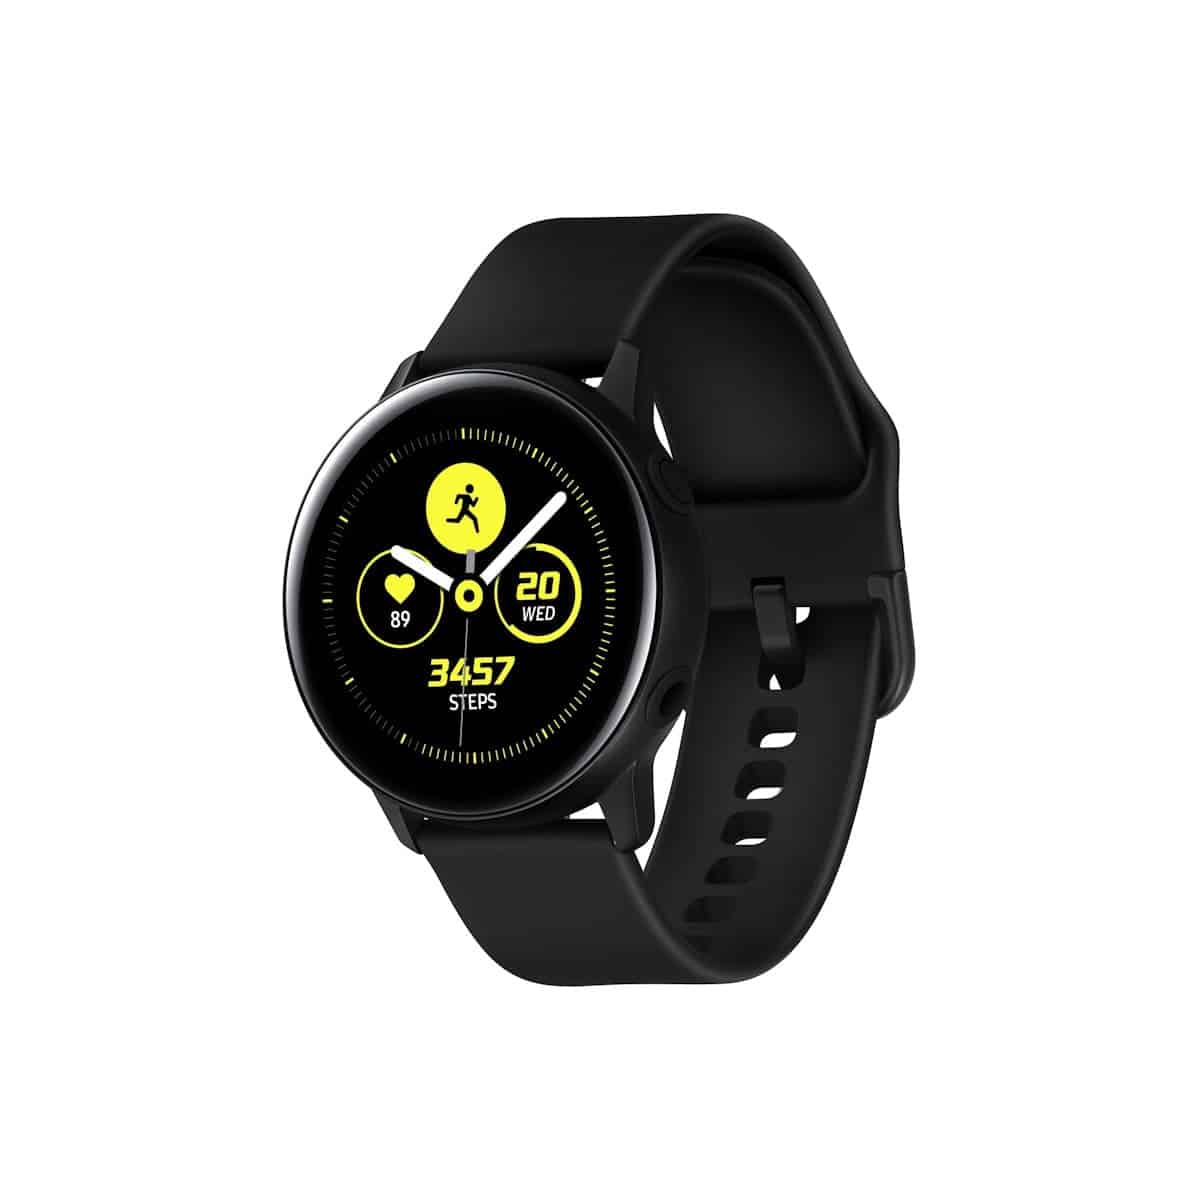 Samsung Galaxy Watch Active 2 droid shout